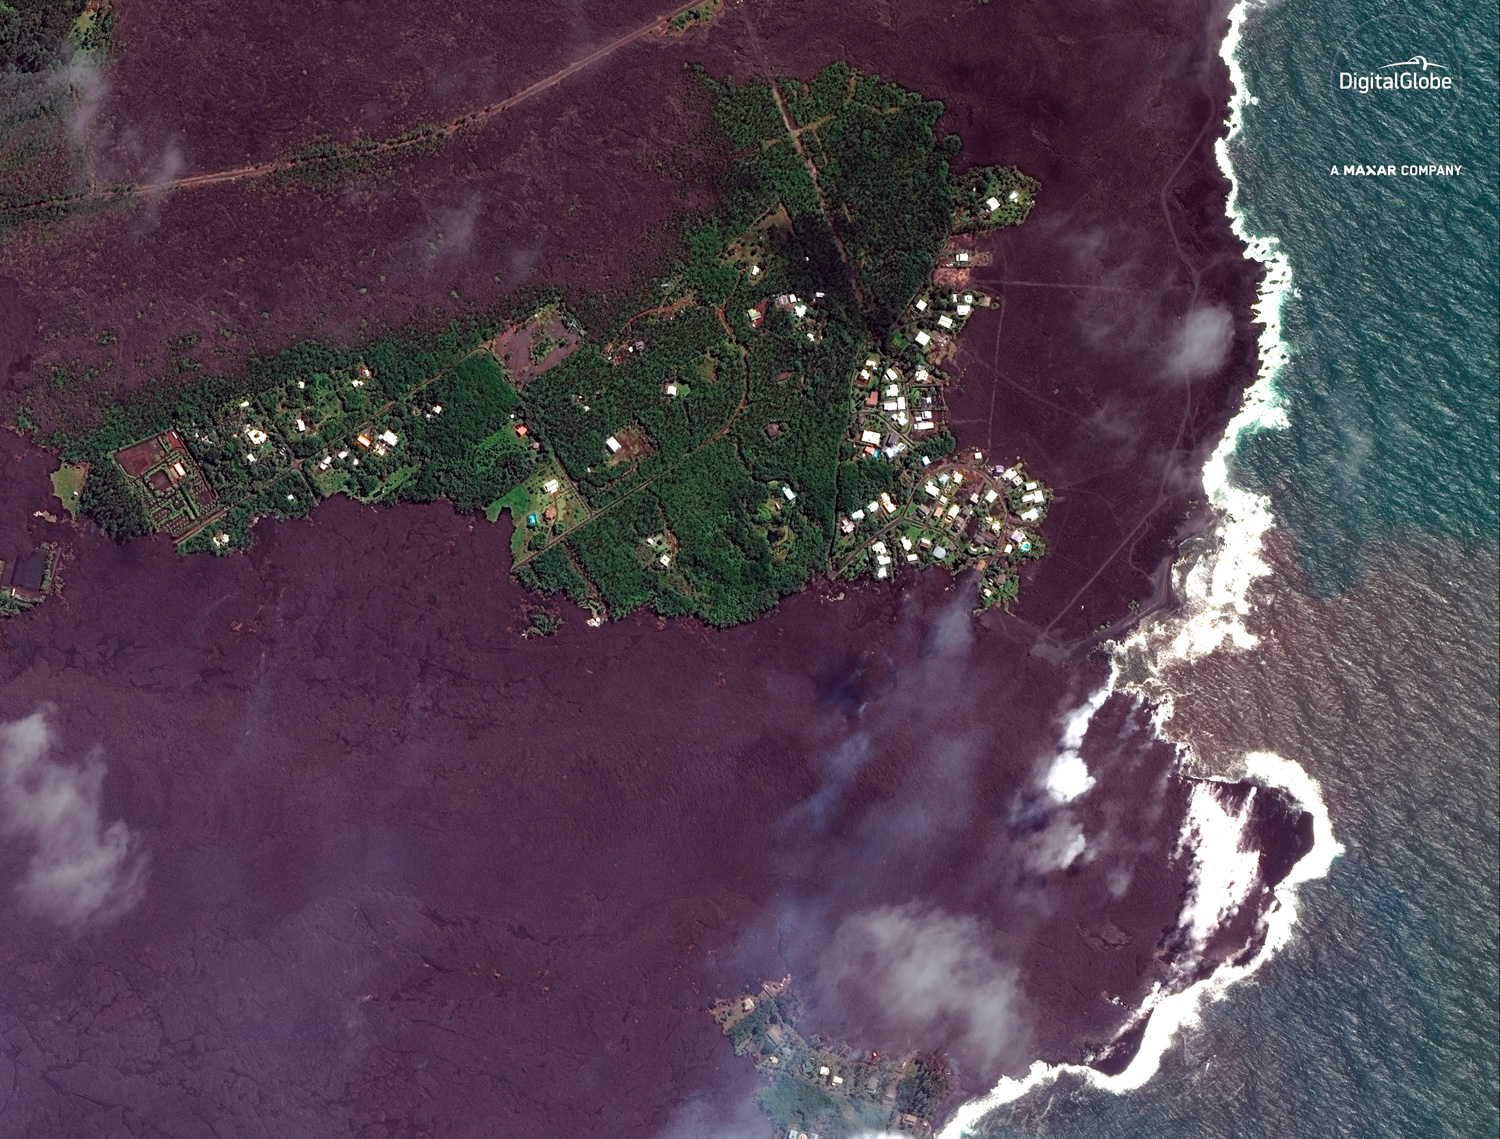 "<div class=""meta image-caption""><div class=""origin-logo origin-image none""><span>none</span></div><span class=""caption-text"">This satellite image provided by Digital Globe captured June 5, 2018, shows lava flows on most of Kapoho Bay in Hawaii. (Satellite Image ©2018 DigitalGlobe, a Maxar company via A)</span></div>"